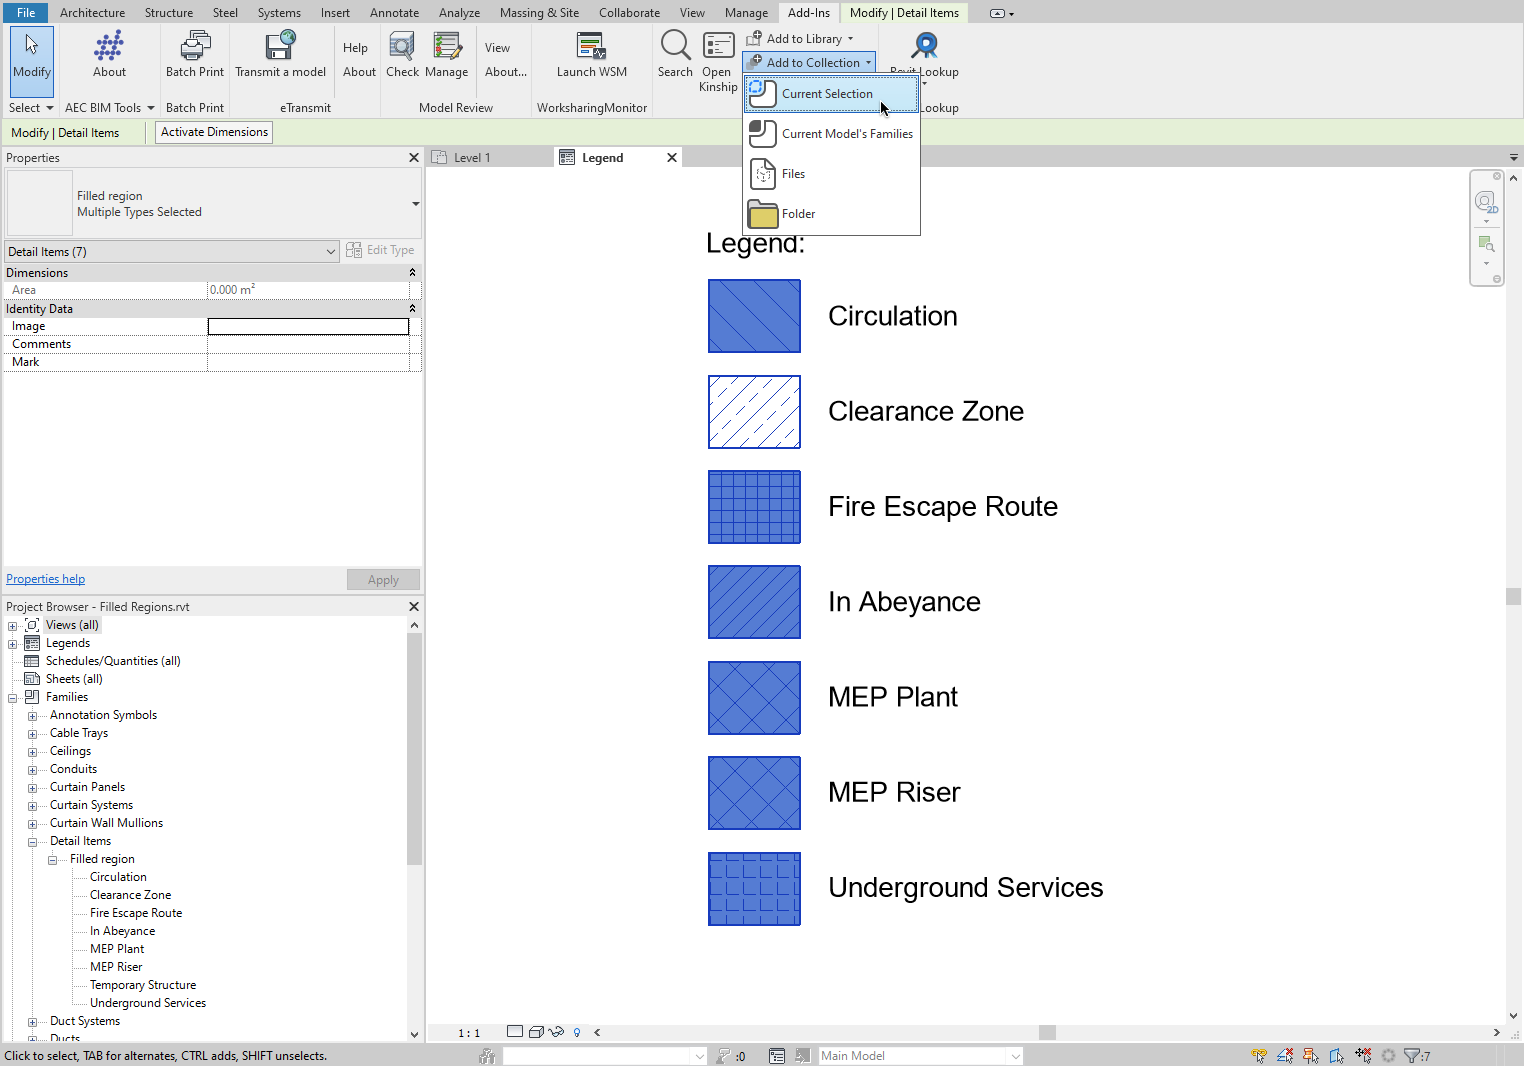 Upload selected Filled Regions to Kinship via the Revit add-in panel.